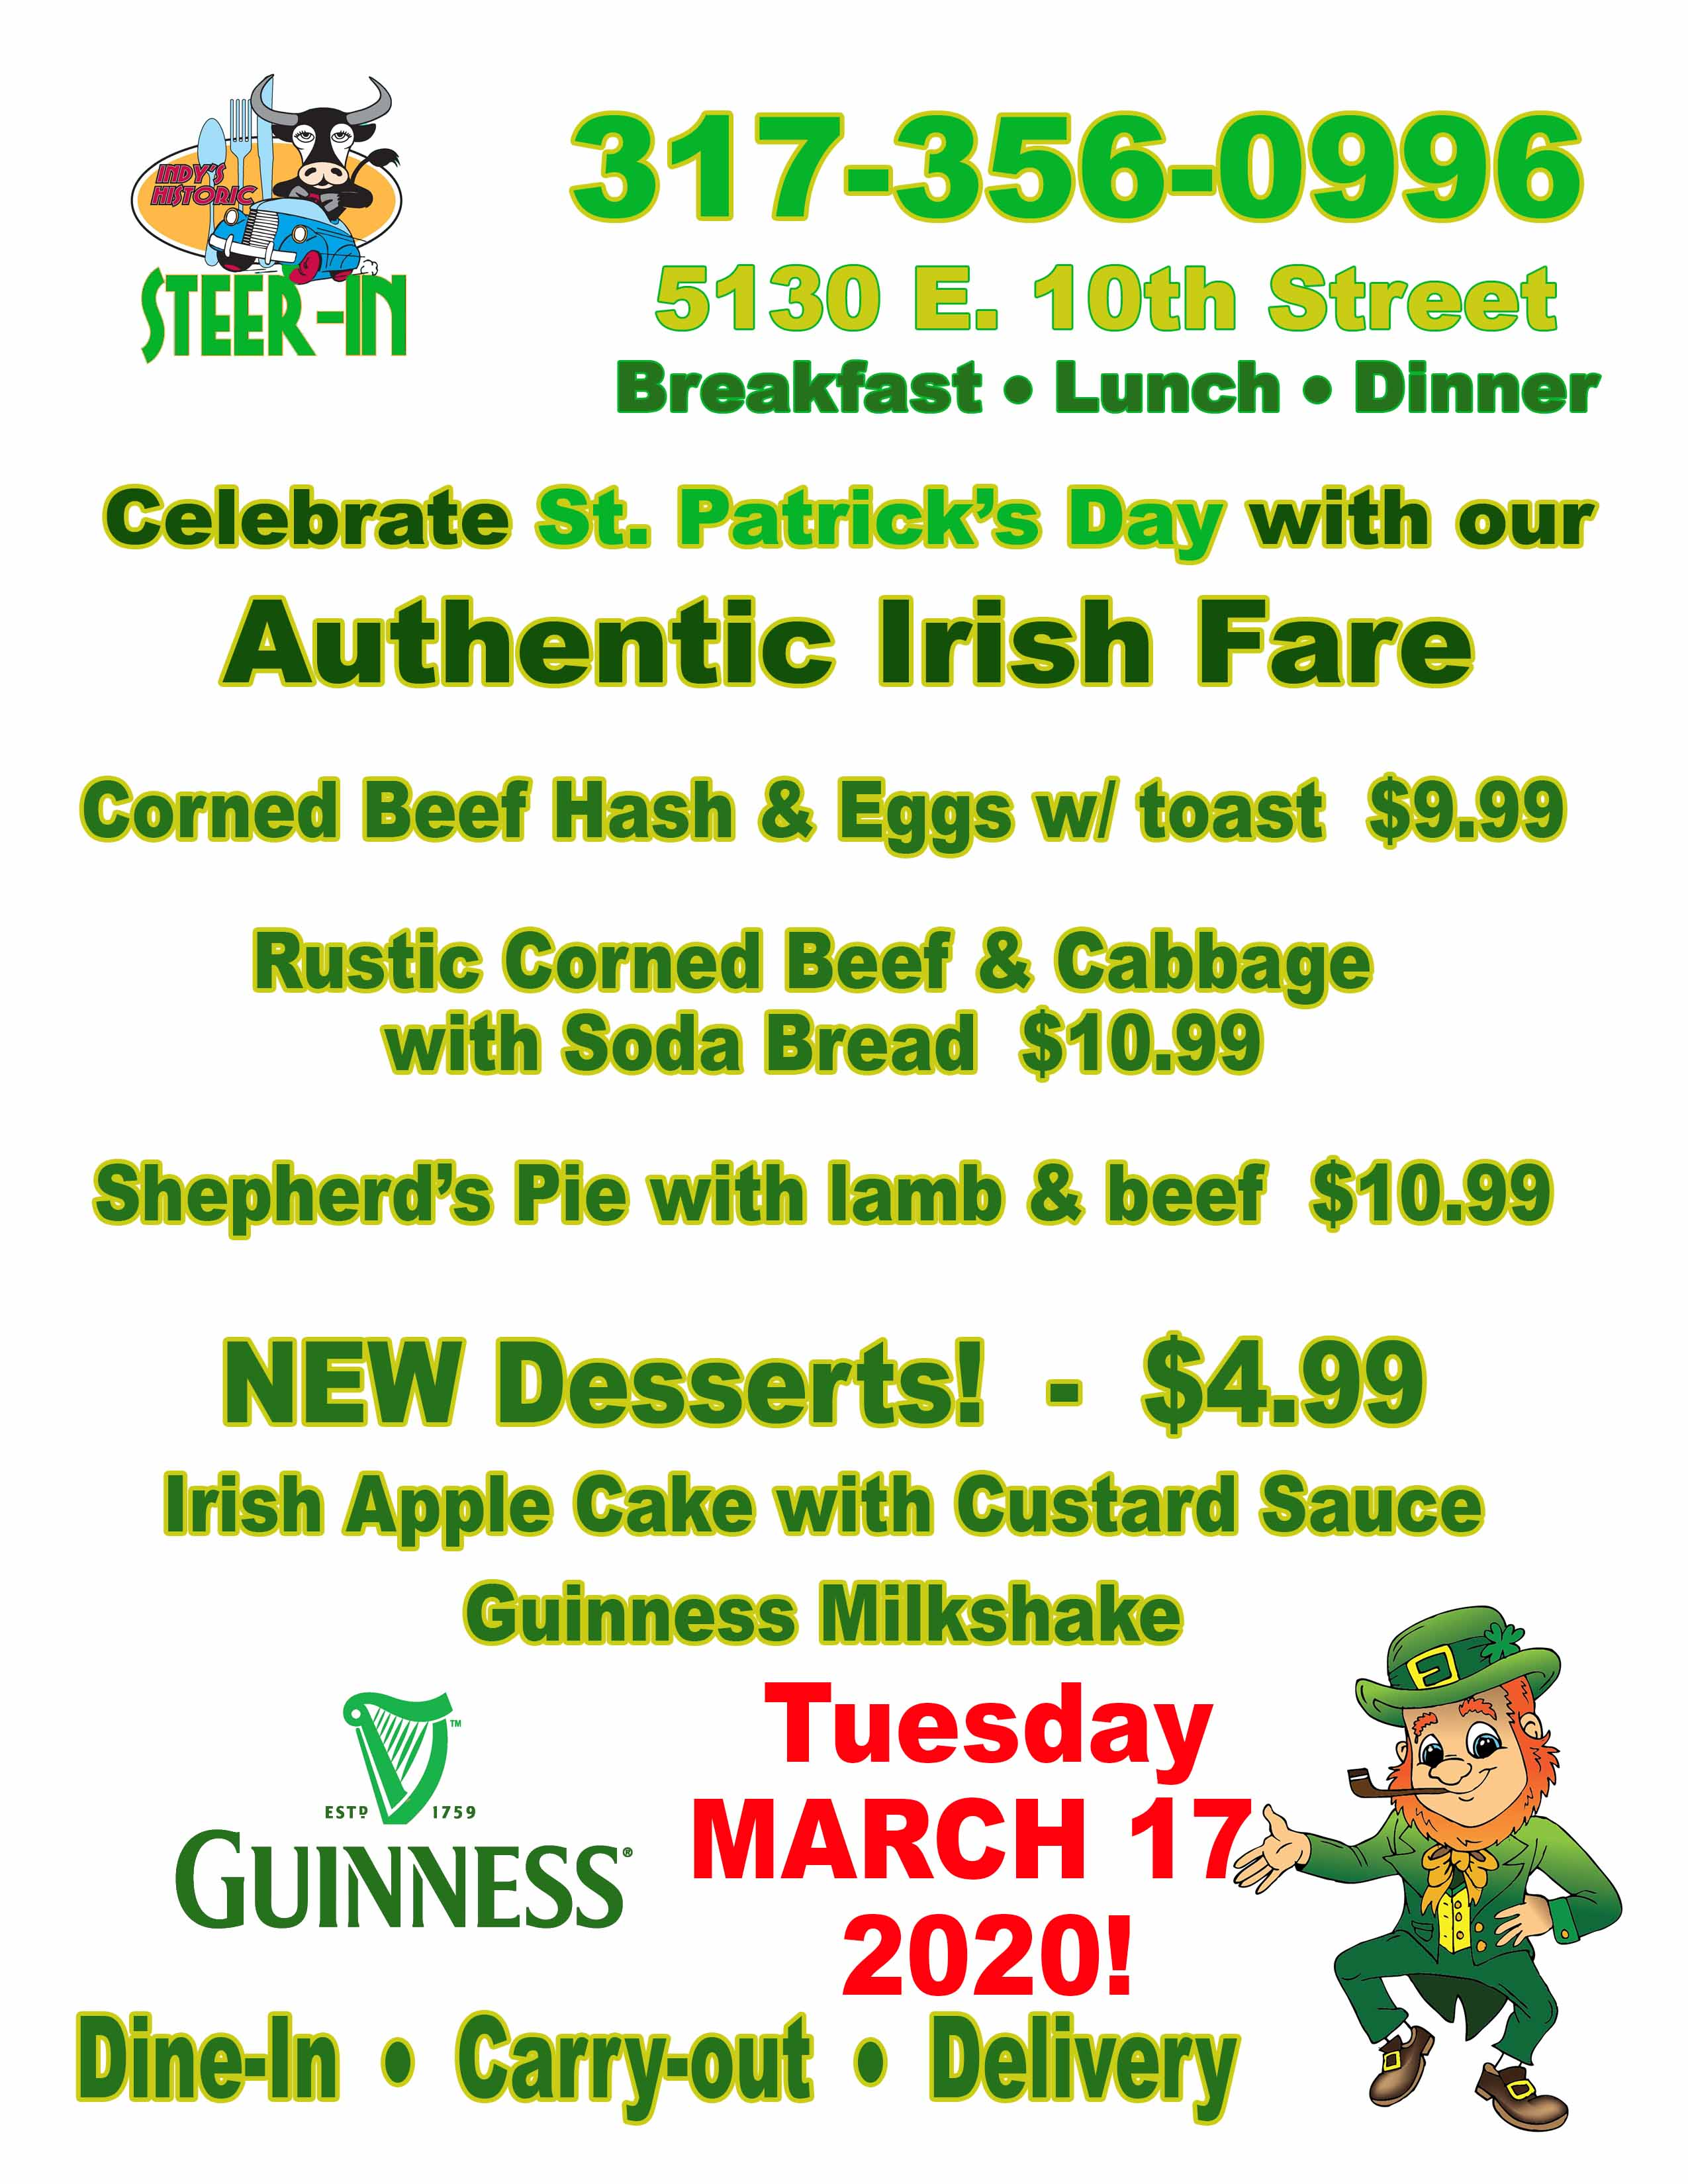 Celebrate St. Patrick's Day with our Authentic Irish Fare!